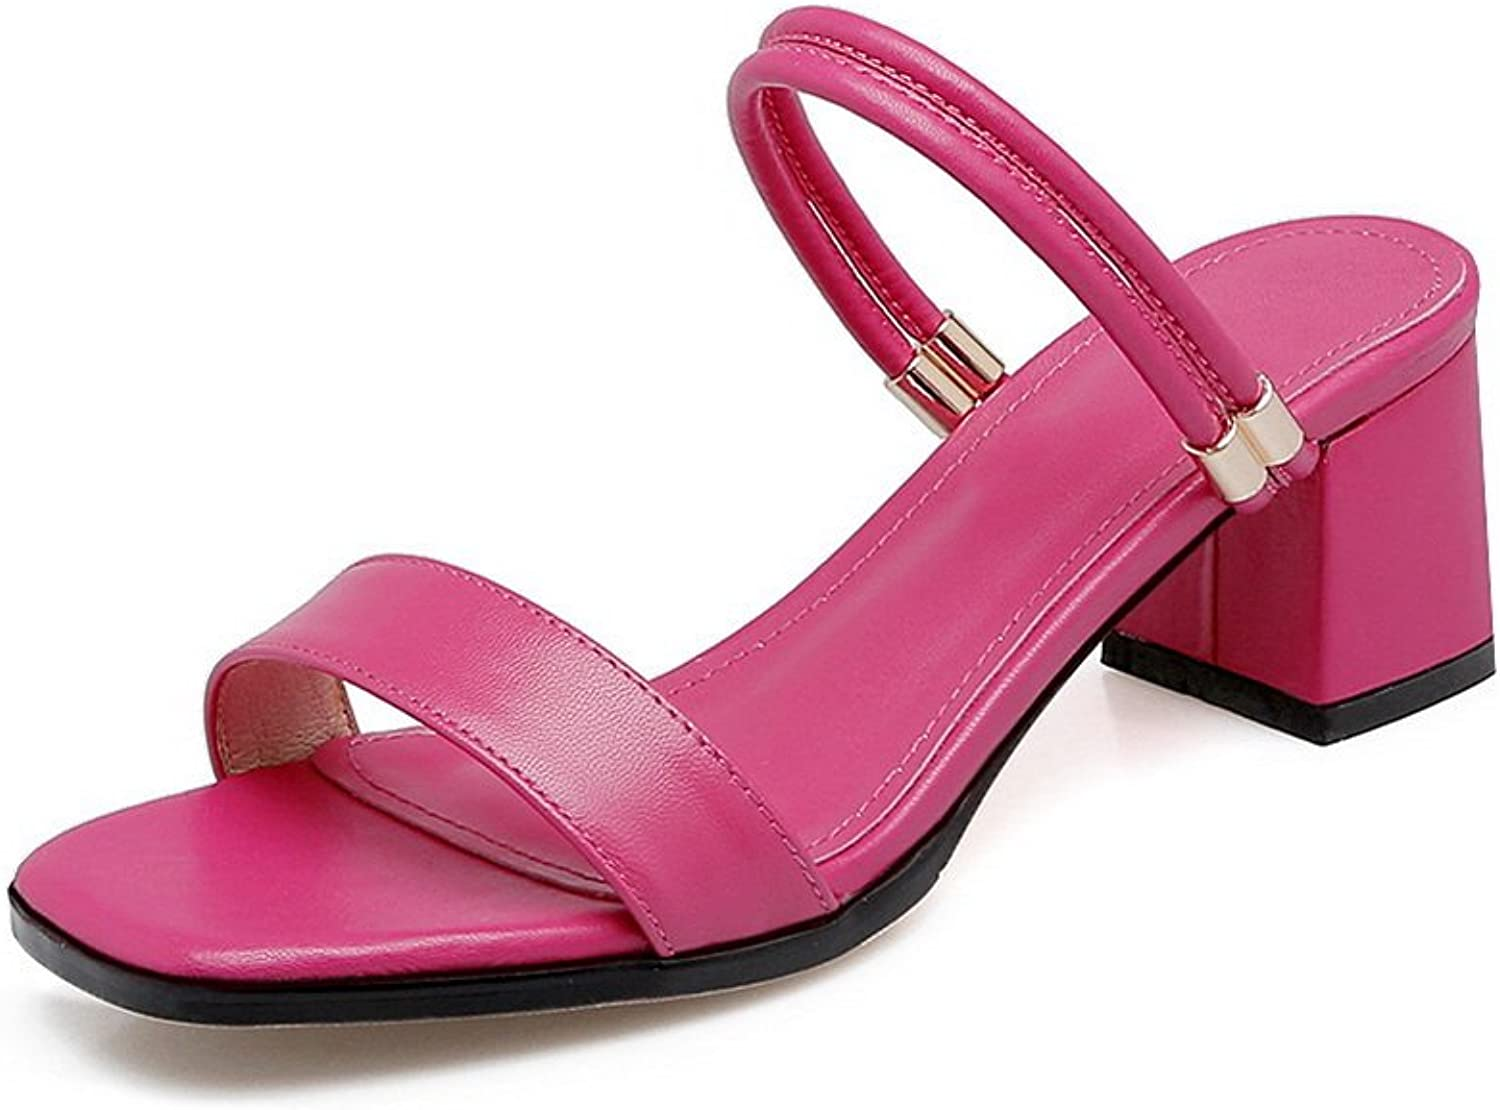 AN Womens Sandals Peep-Toe Smooth Leather Urethane Sandals DIU00608